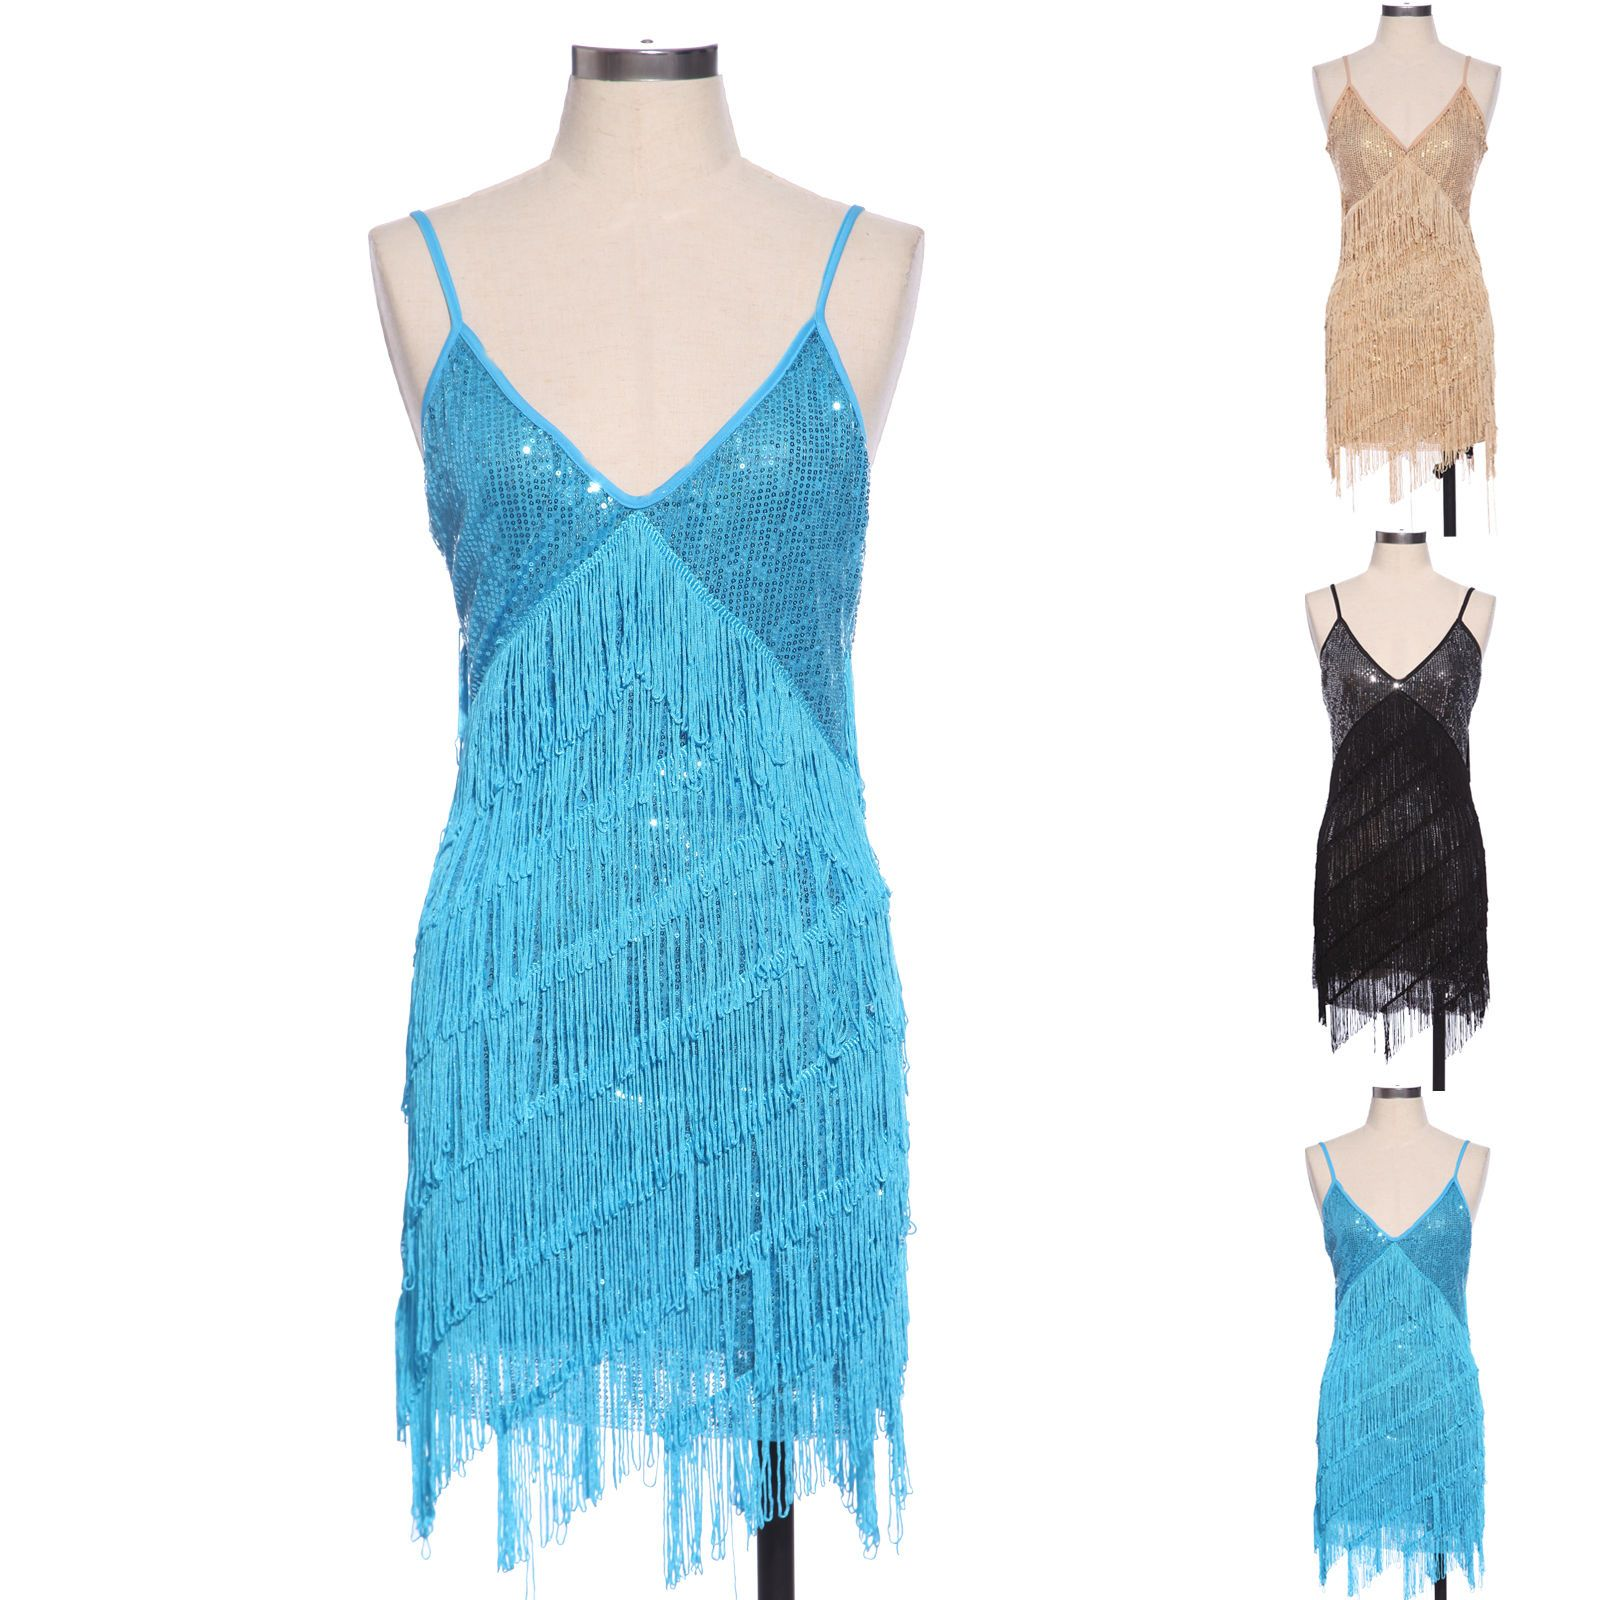 Cool Awesome Retro 20s 30s Flapper Sequin Fringed Costume Cocktail ...